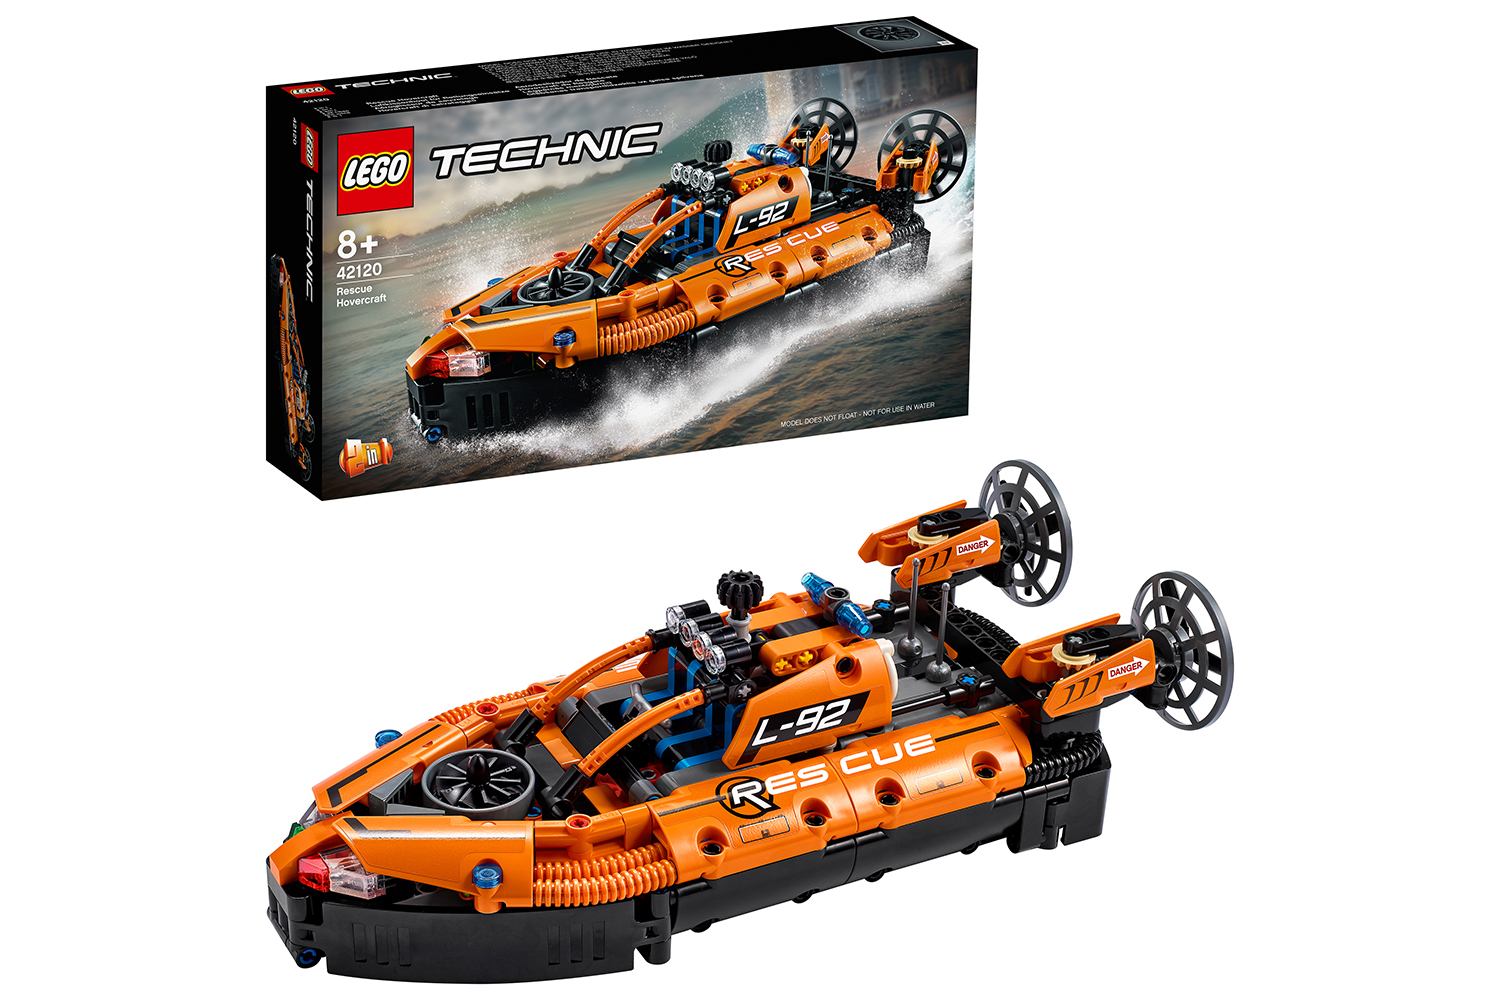 lego-technic-hovercraft-for-rescue-operations-42120/